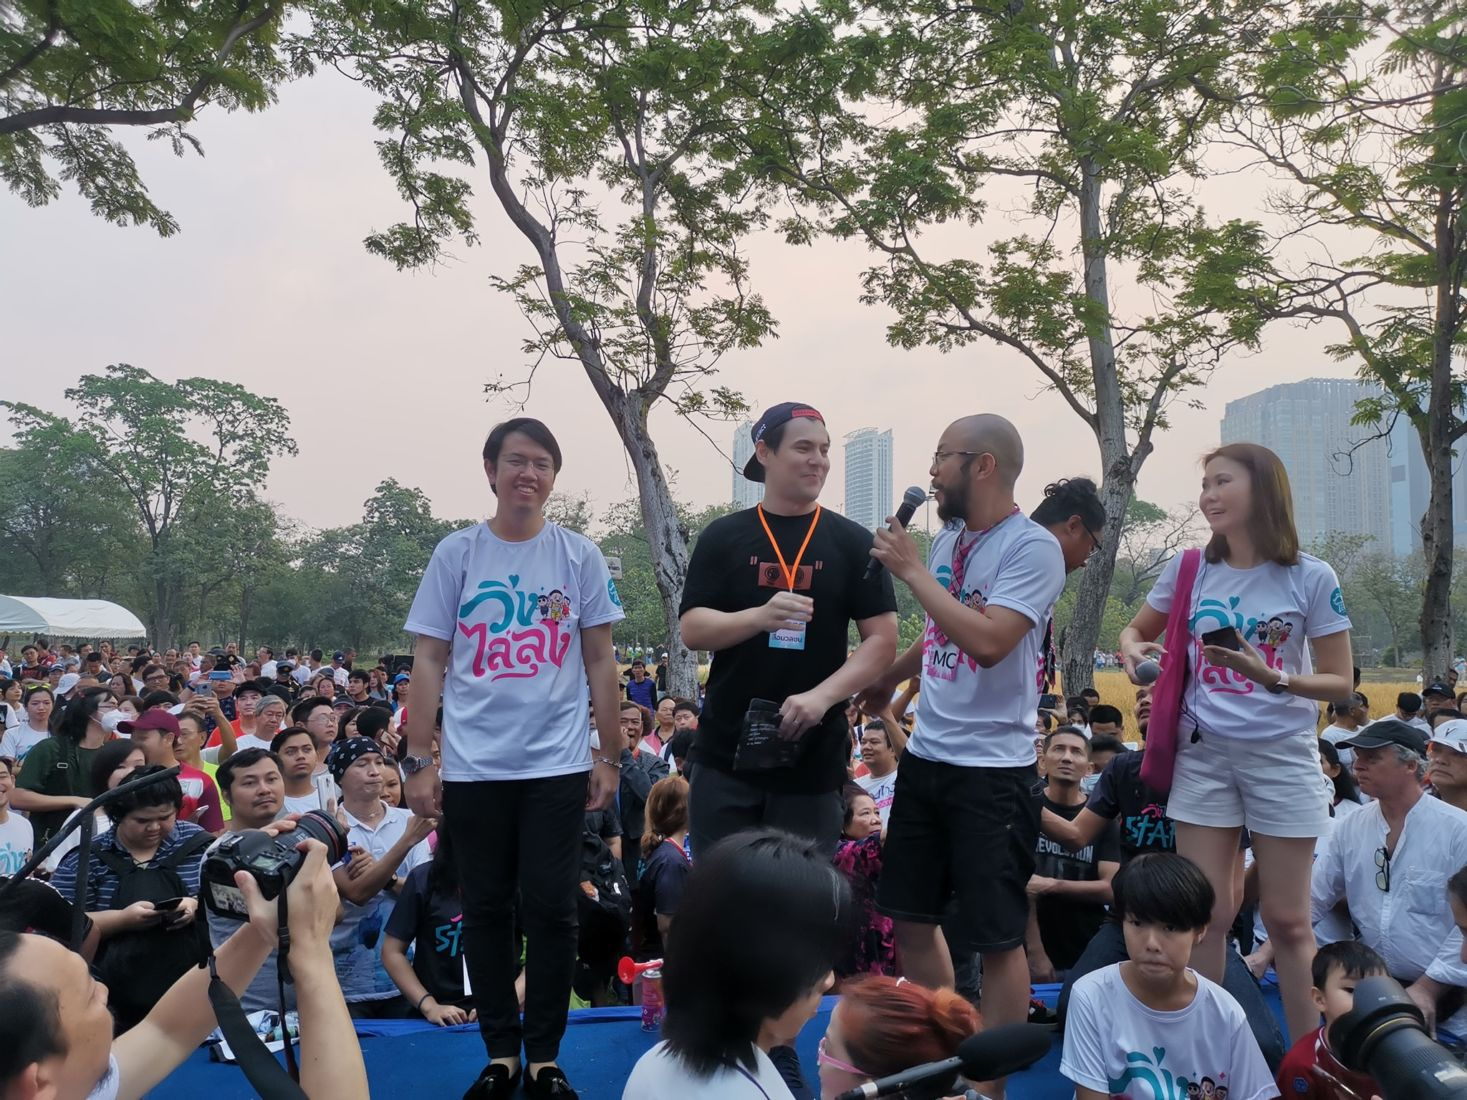 Thousands gather for this morning's protest running event in Bangkok | News by Thaiger